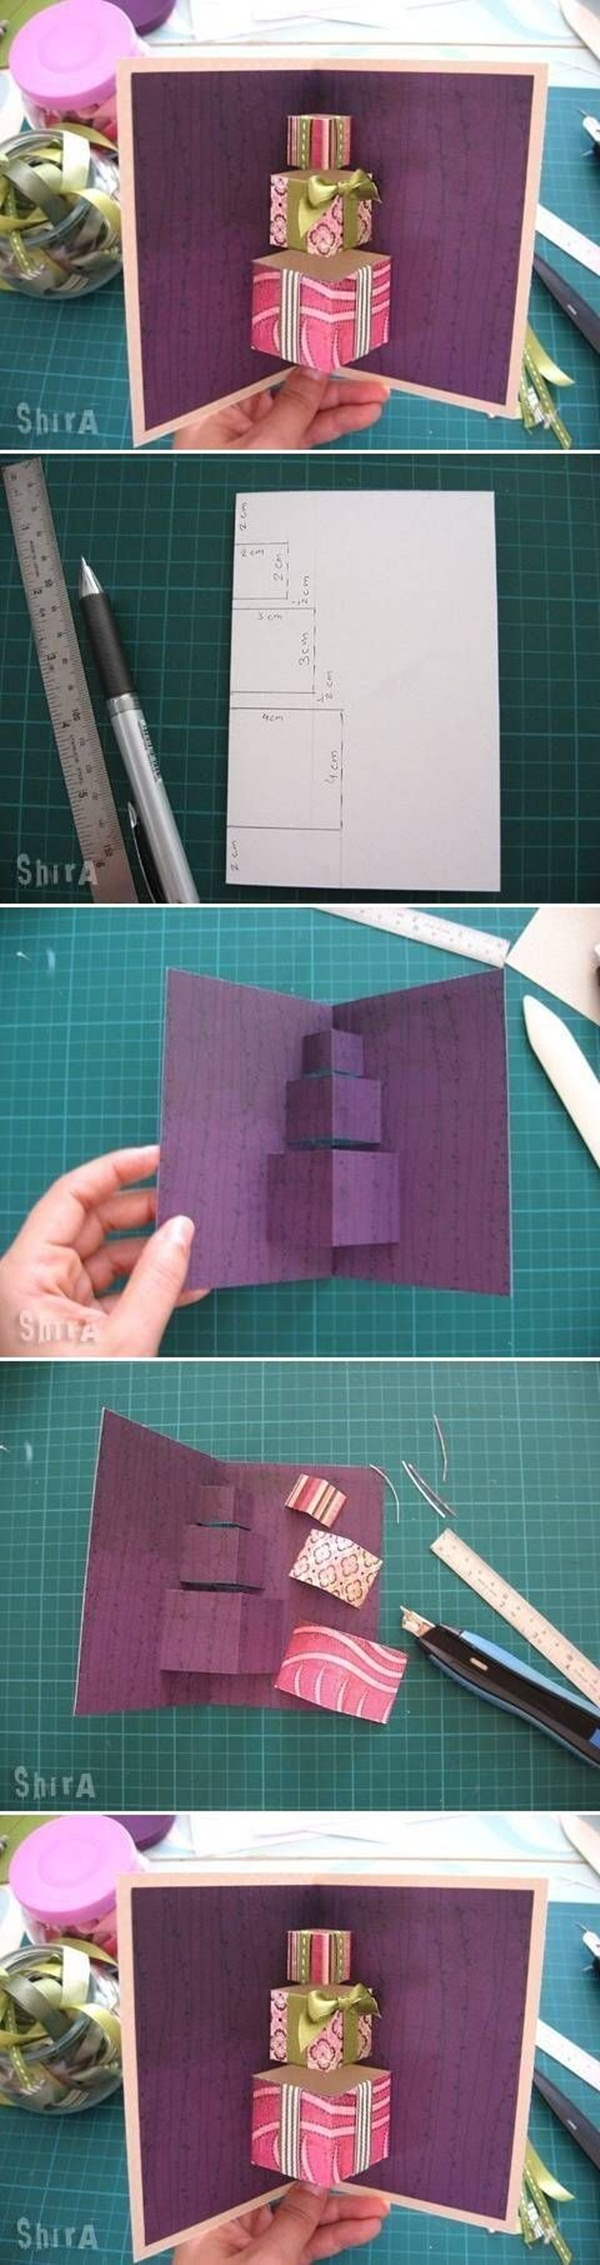 Paper Craft Ideas8